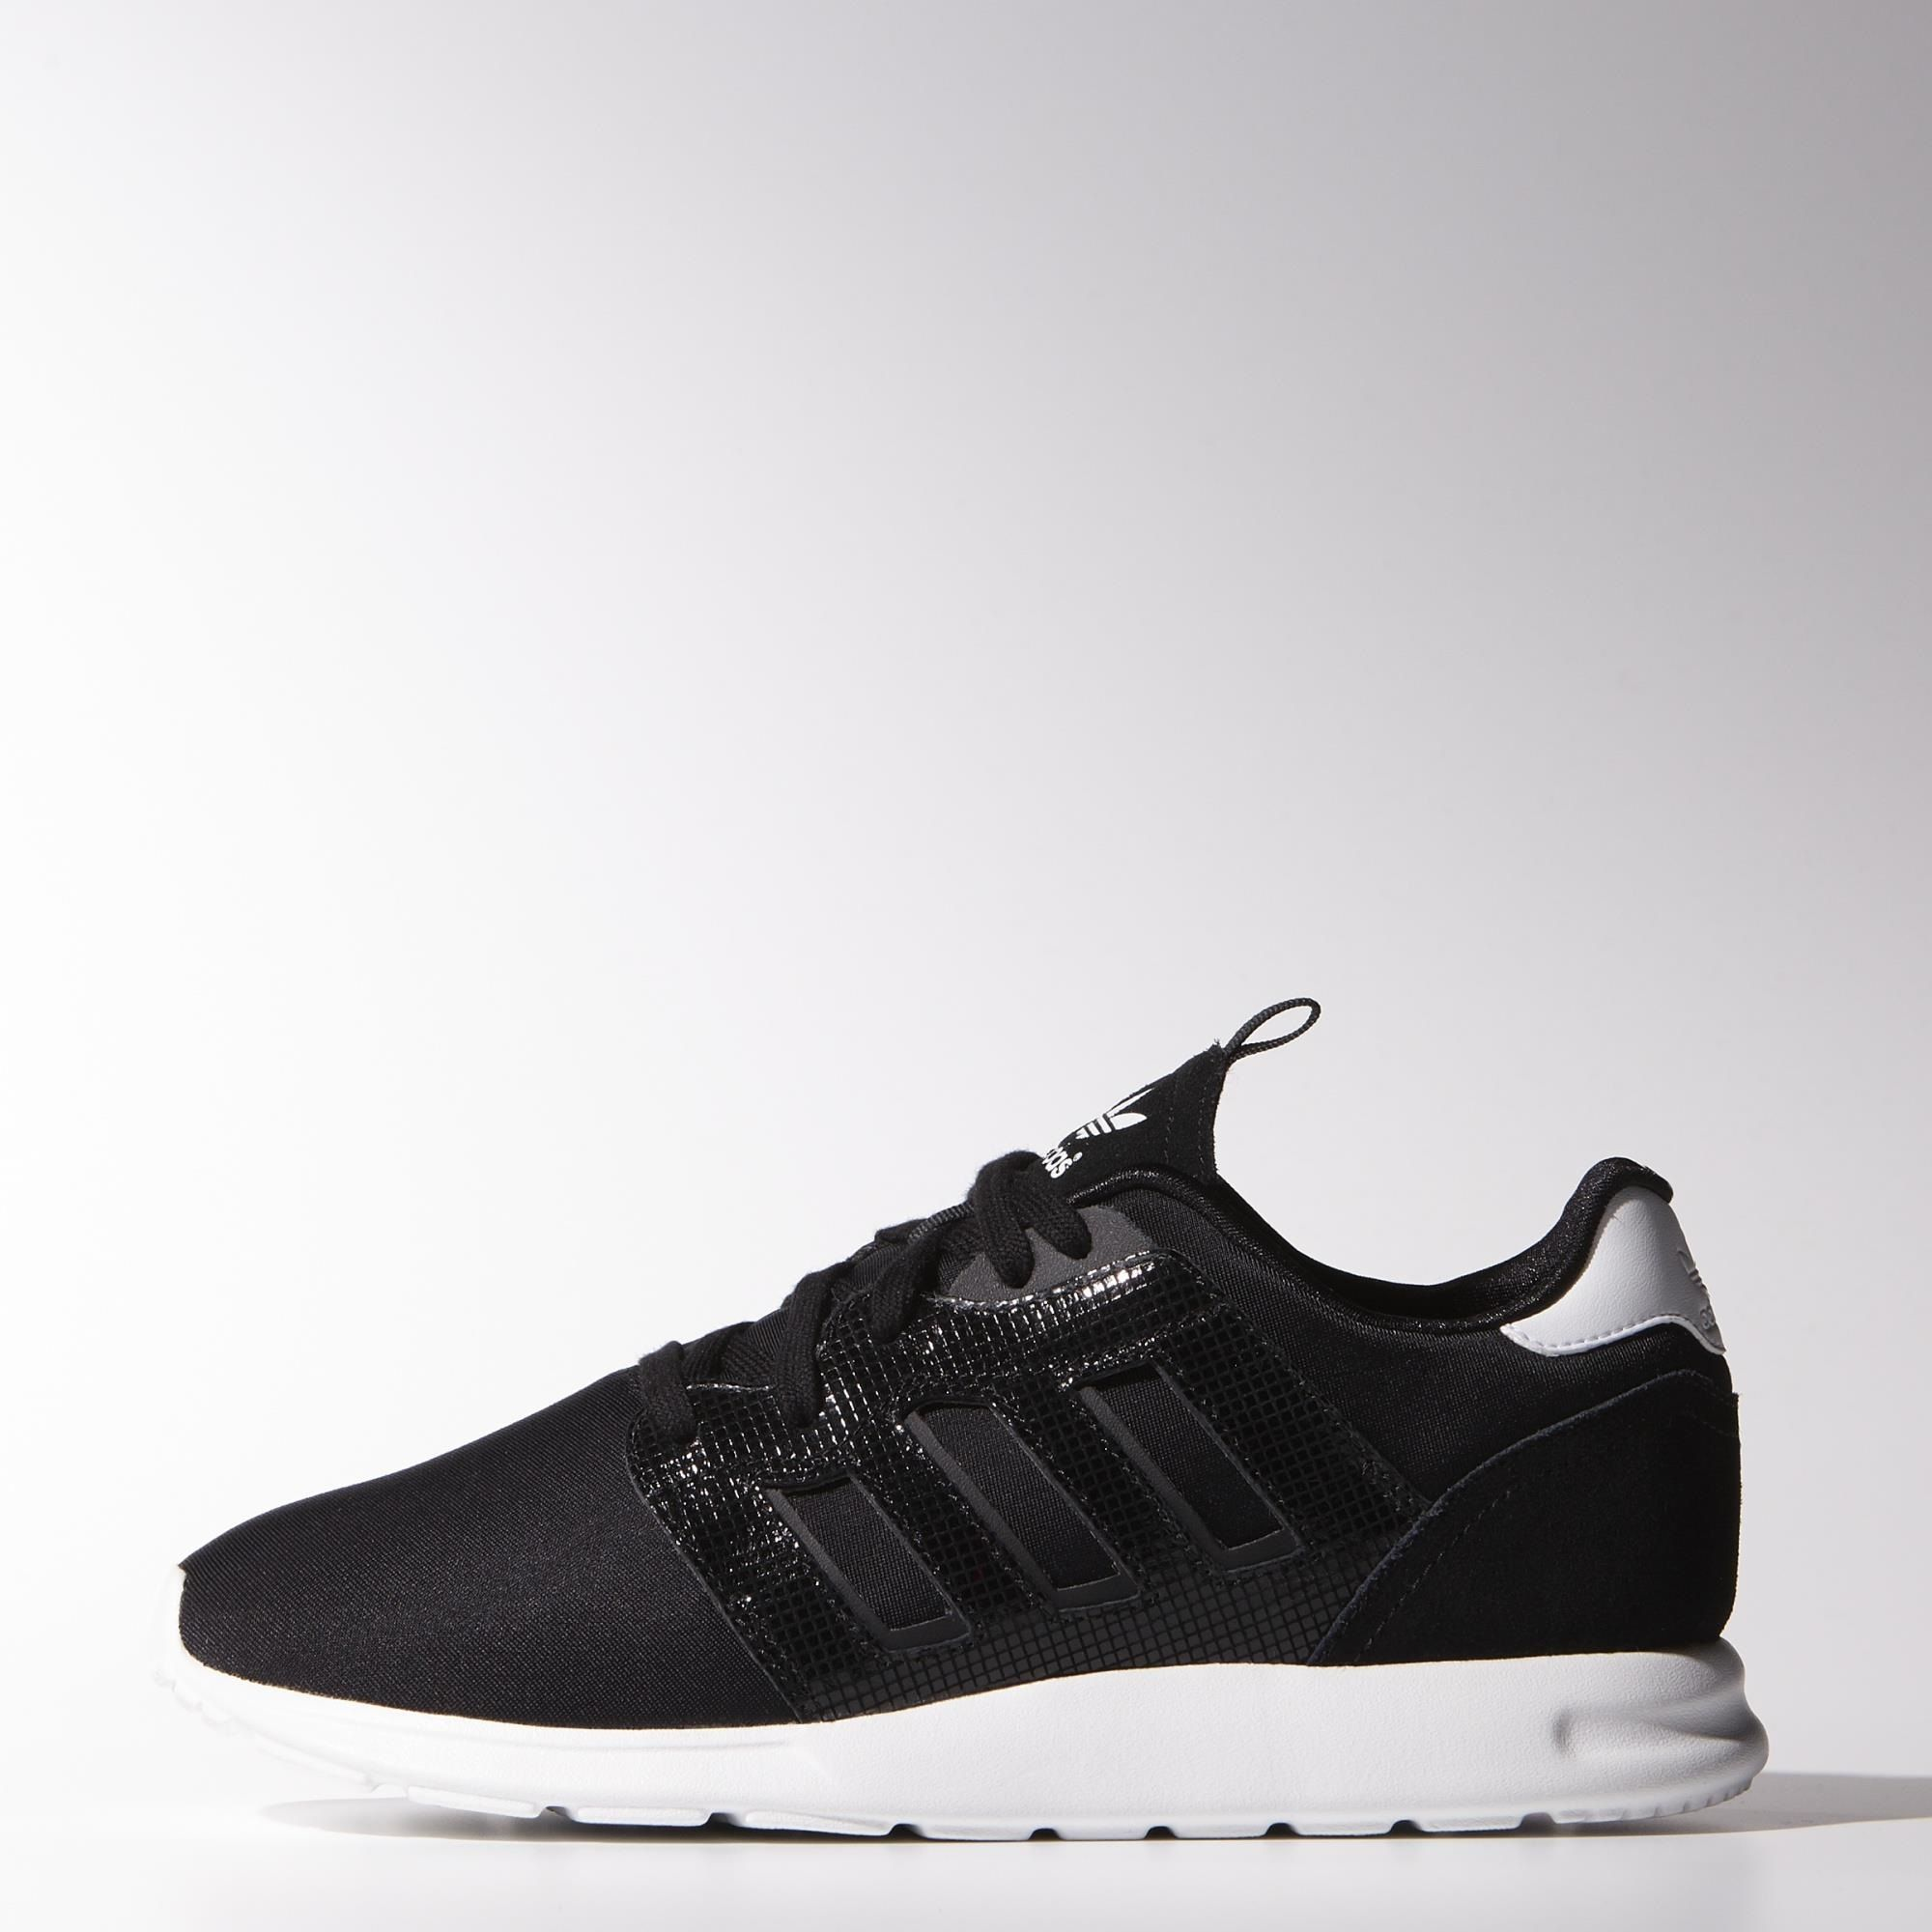 adidas zx 500 mens trainers nz